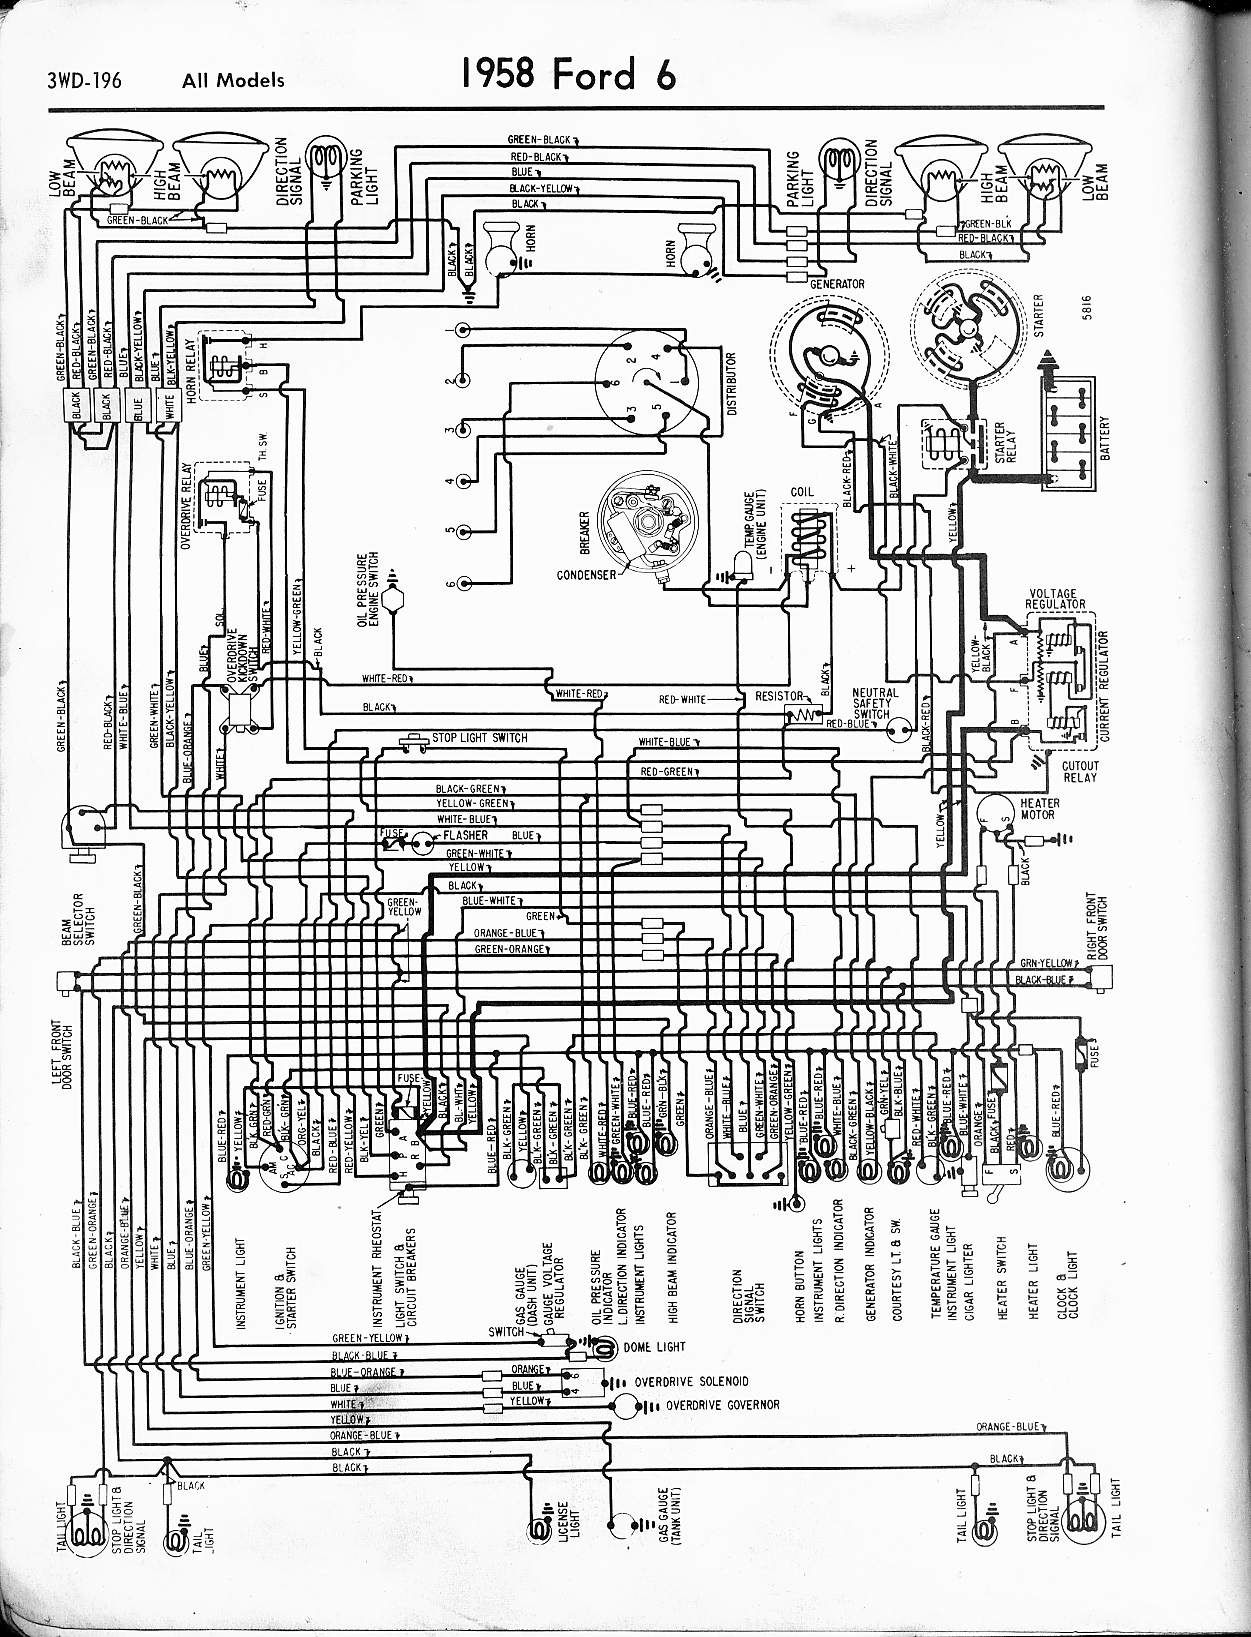 f100 wiring diagram f100 image wiring diagram 1955 ford f100 generator wiring diagram 1964 gm ignition switch wiring on f100 wiring diagram